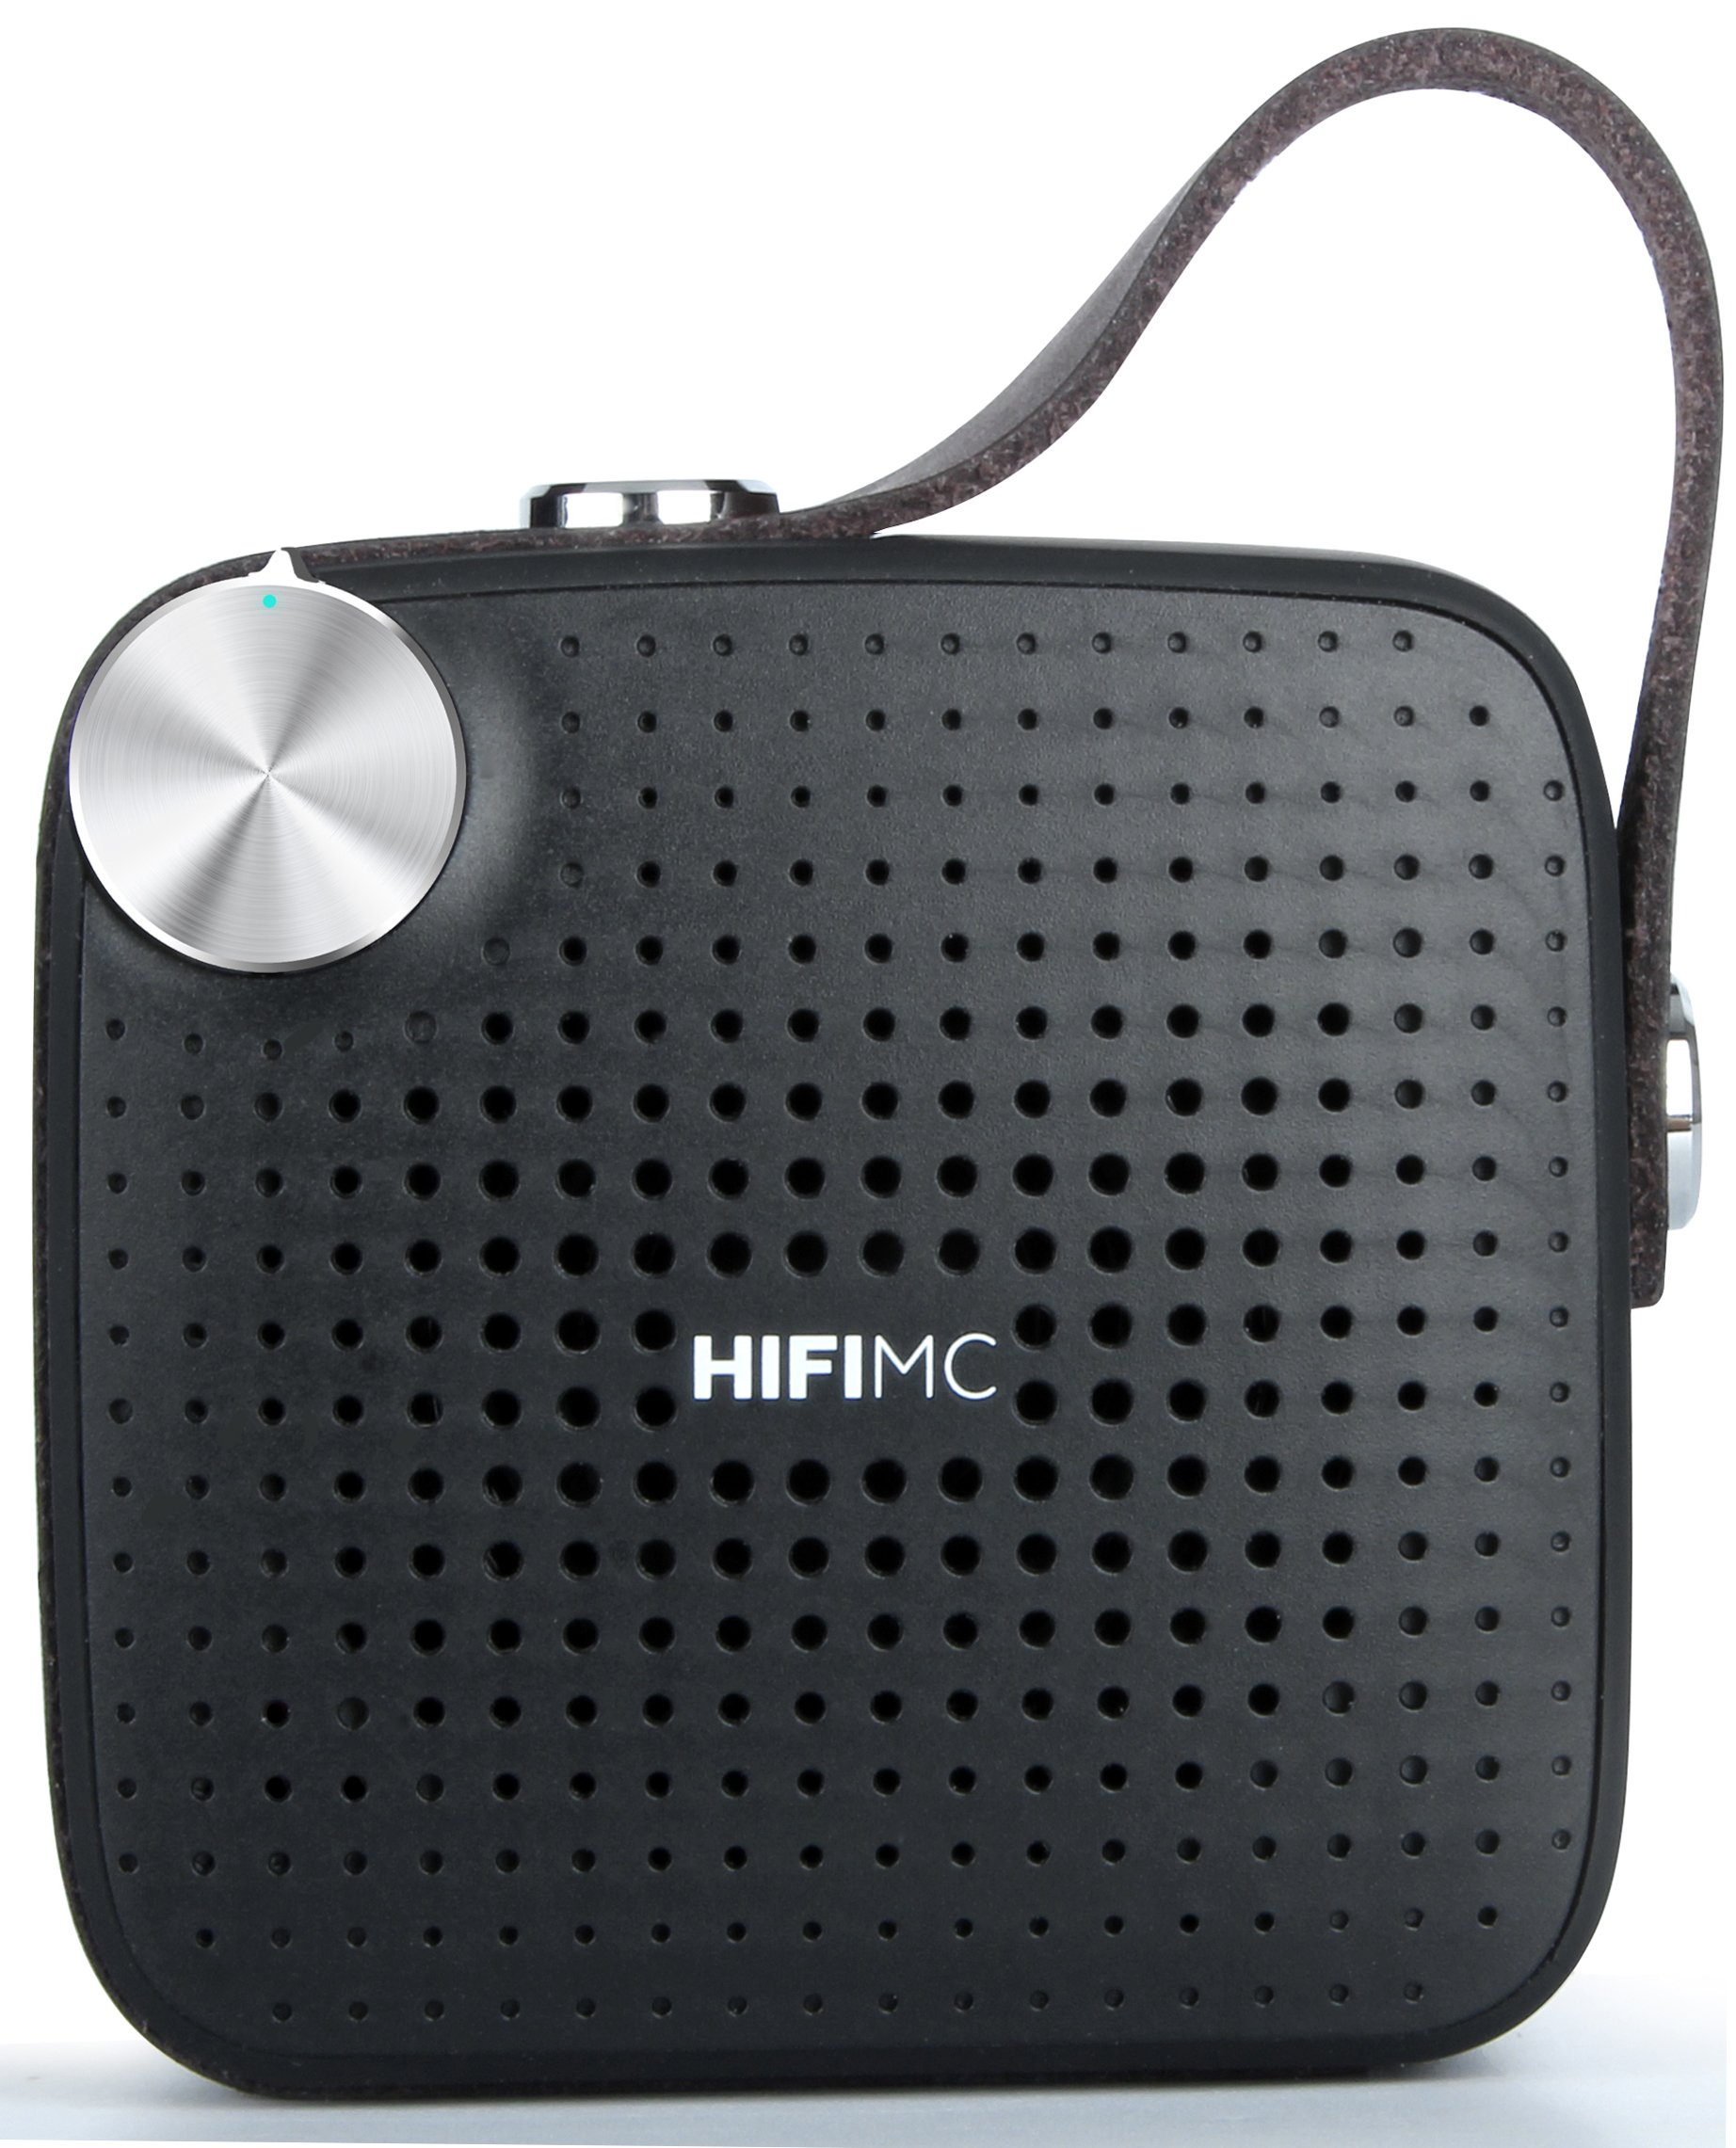 HiFi MC Micro Bluetooth Speaker Modern Portable : Wireless Bluetooth Audio, Amazingly Loud Volume, Prime HiFi Sound, Powerful Bass - Best Bluetooth Sound-Link iPhone Samsung Smartphones &Tablet